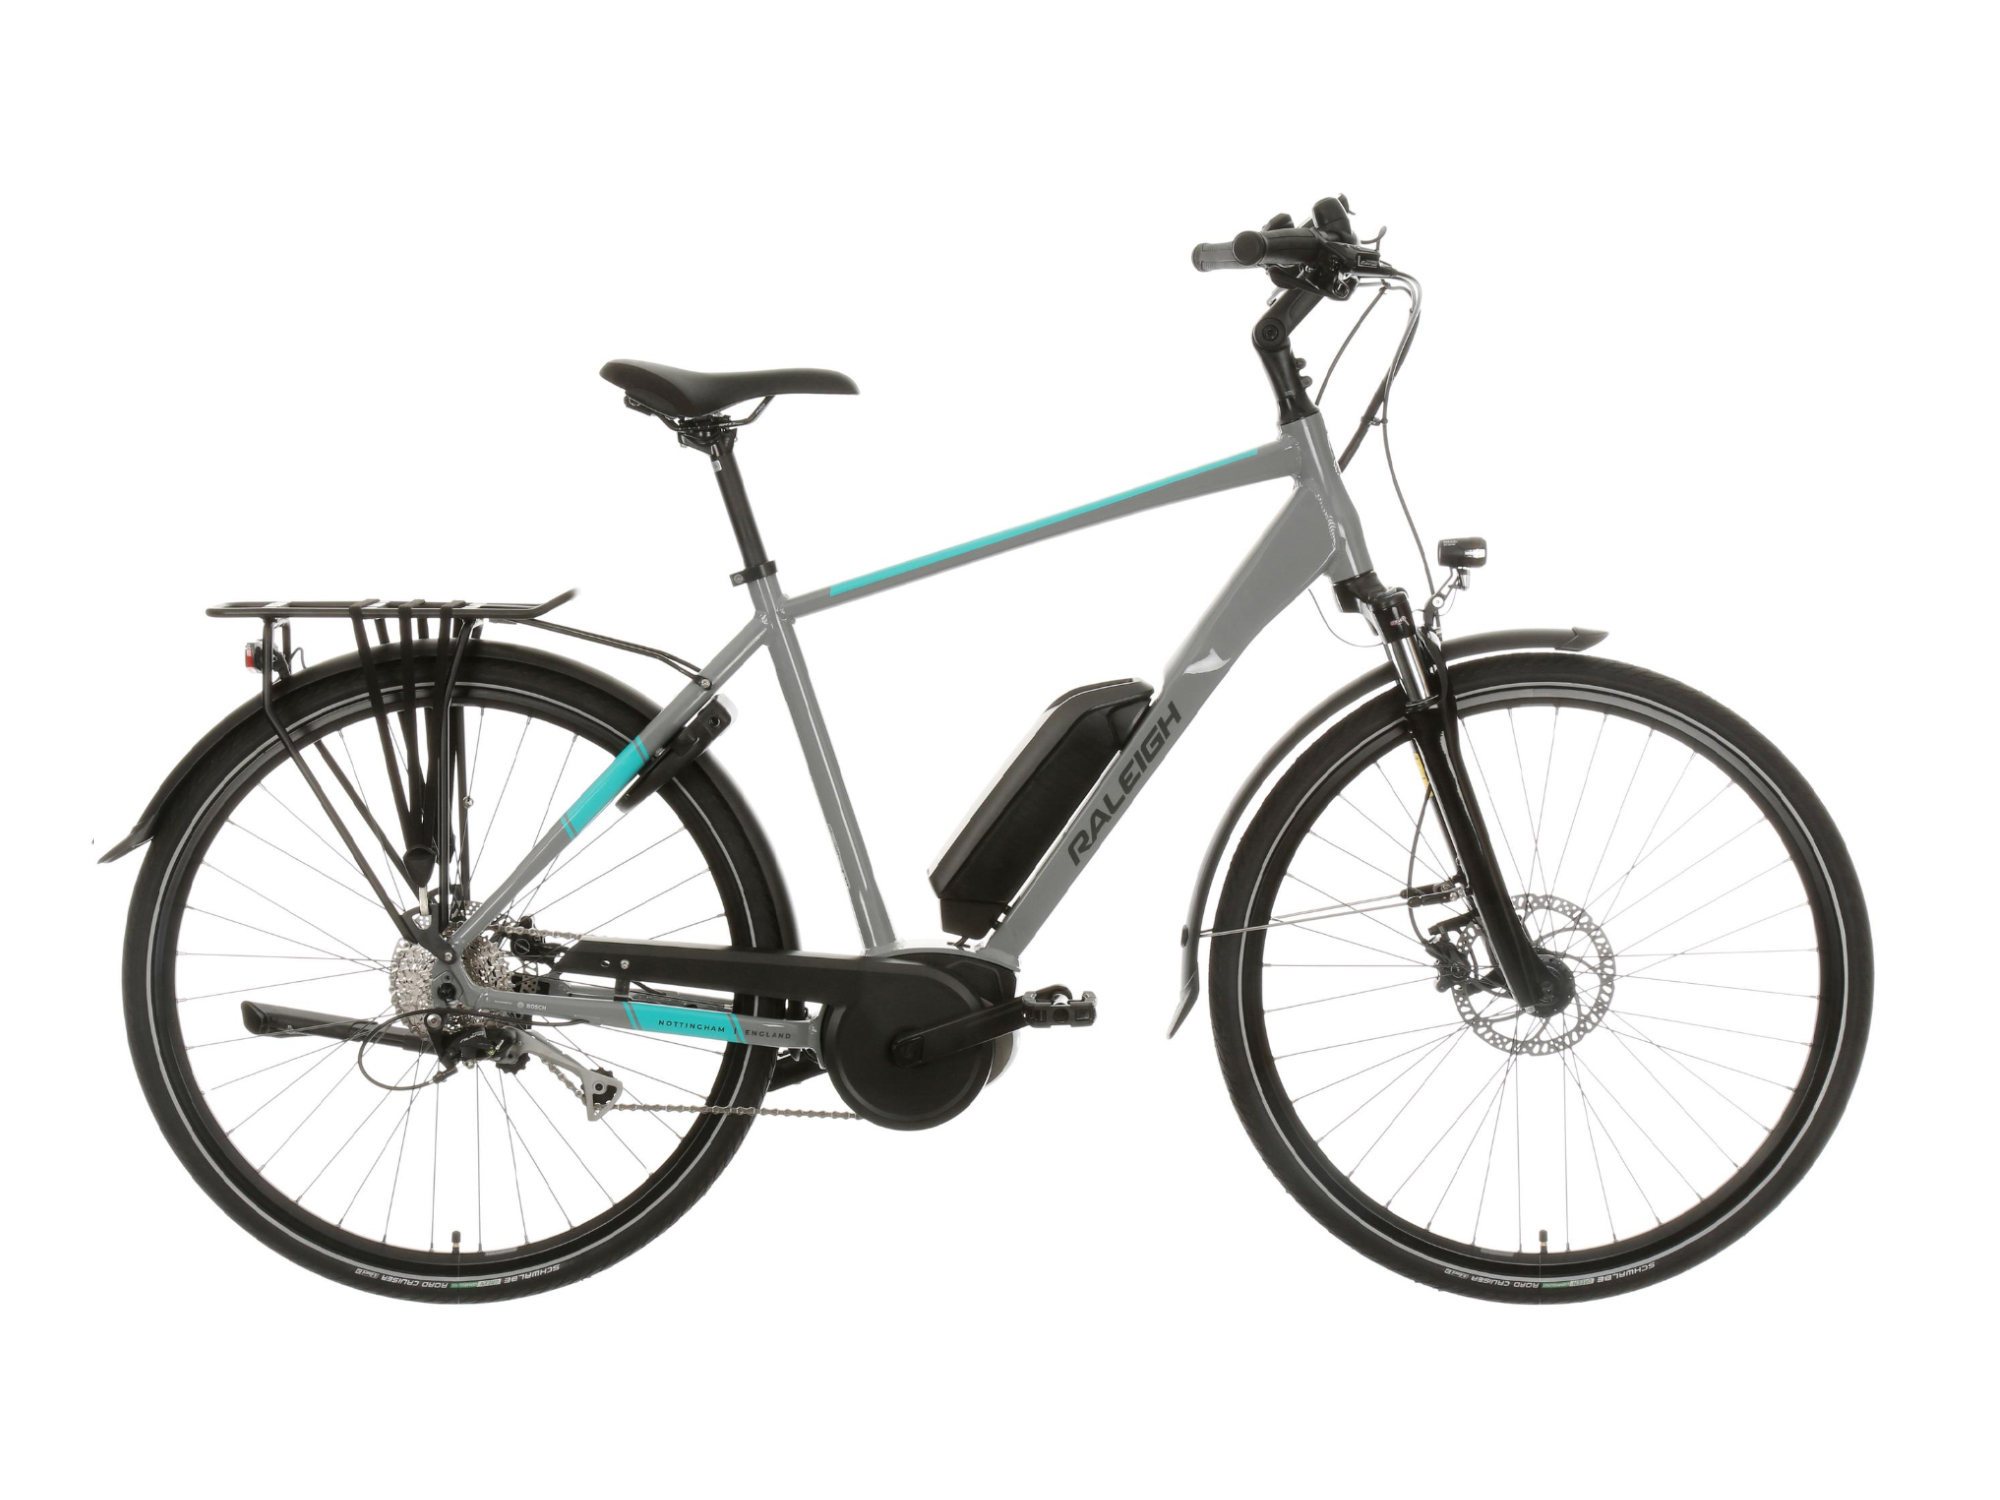 Raleigh Felix Plus electric bike with crossbar frame